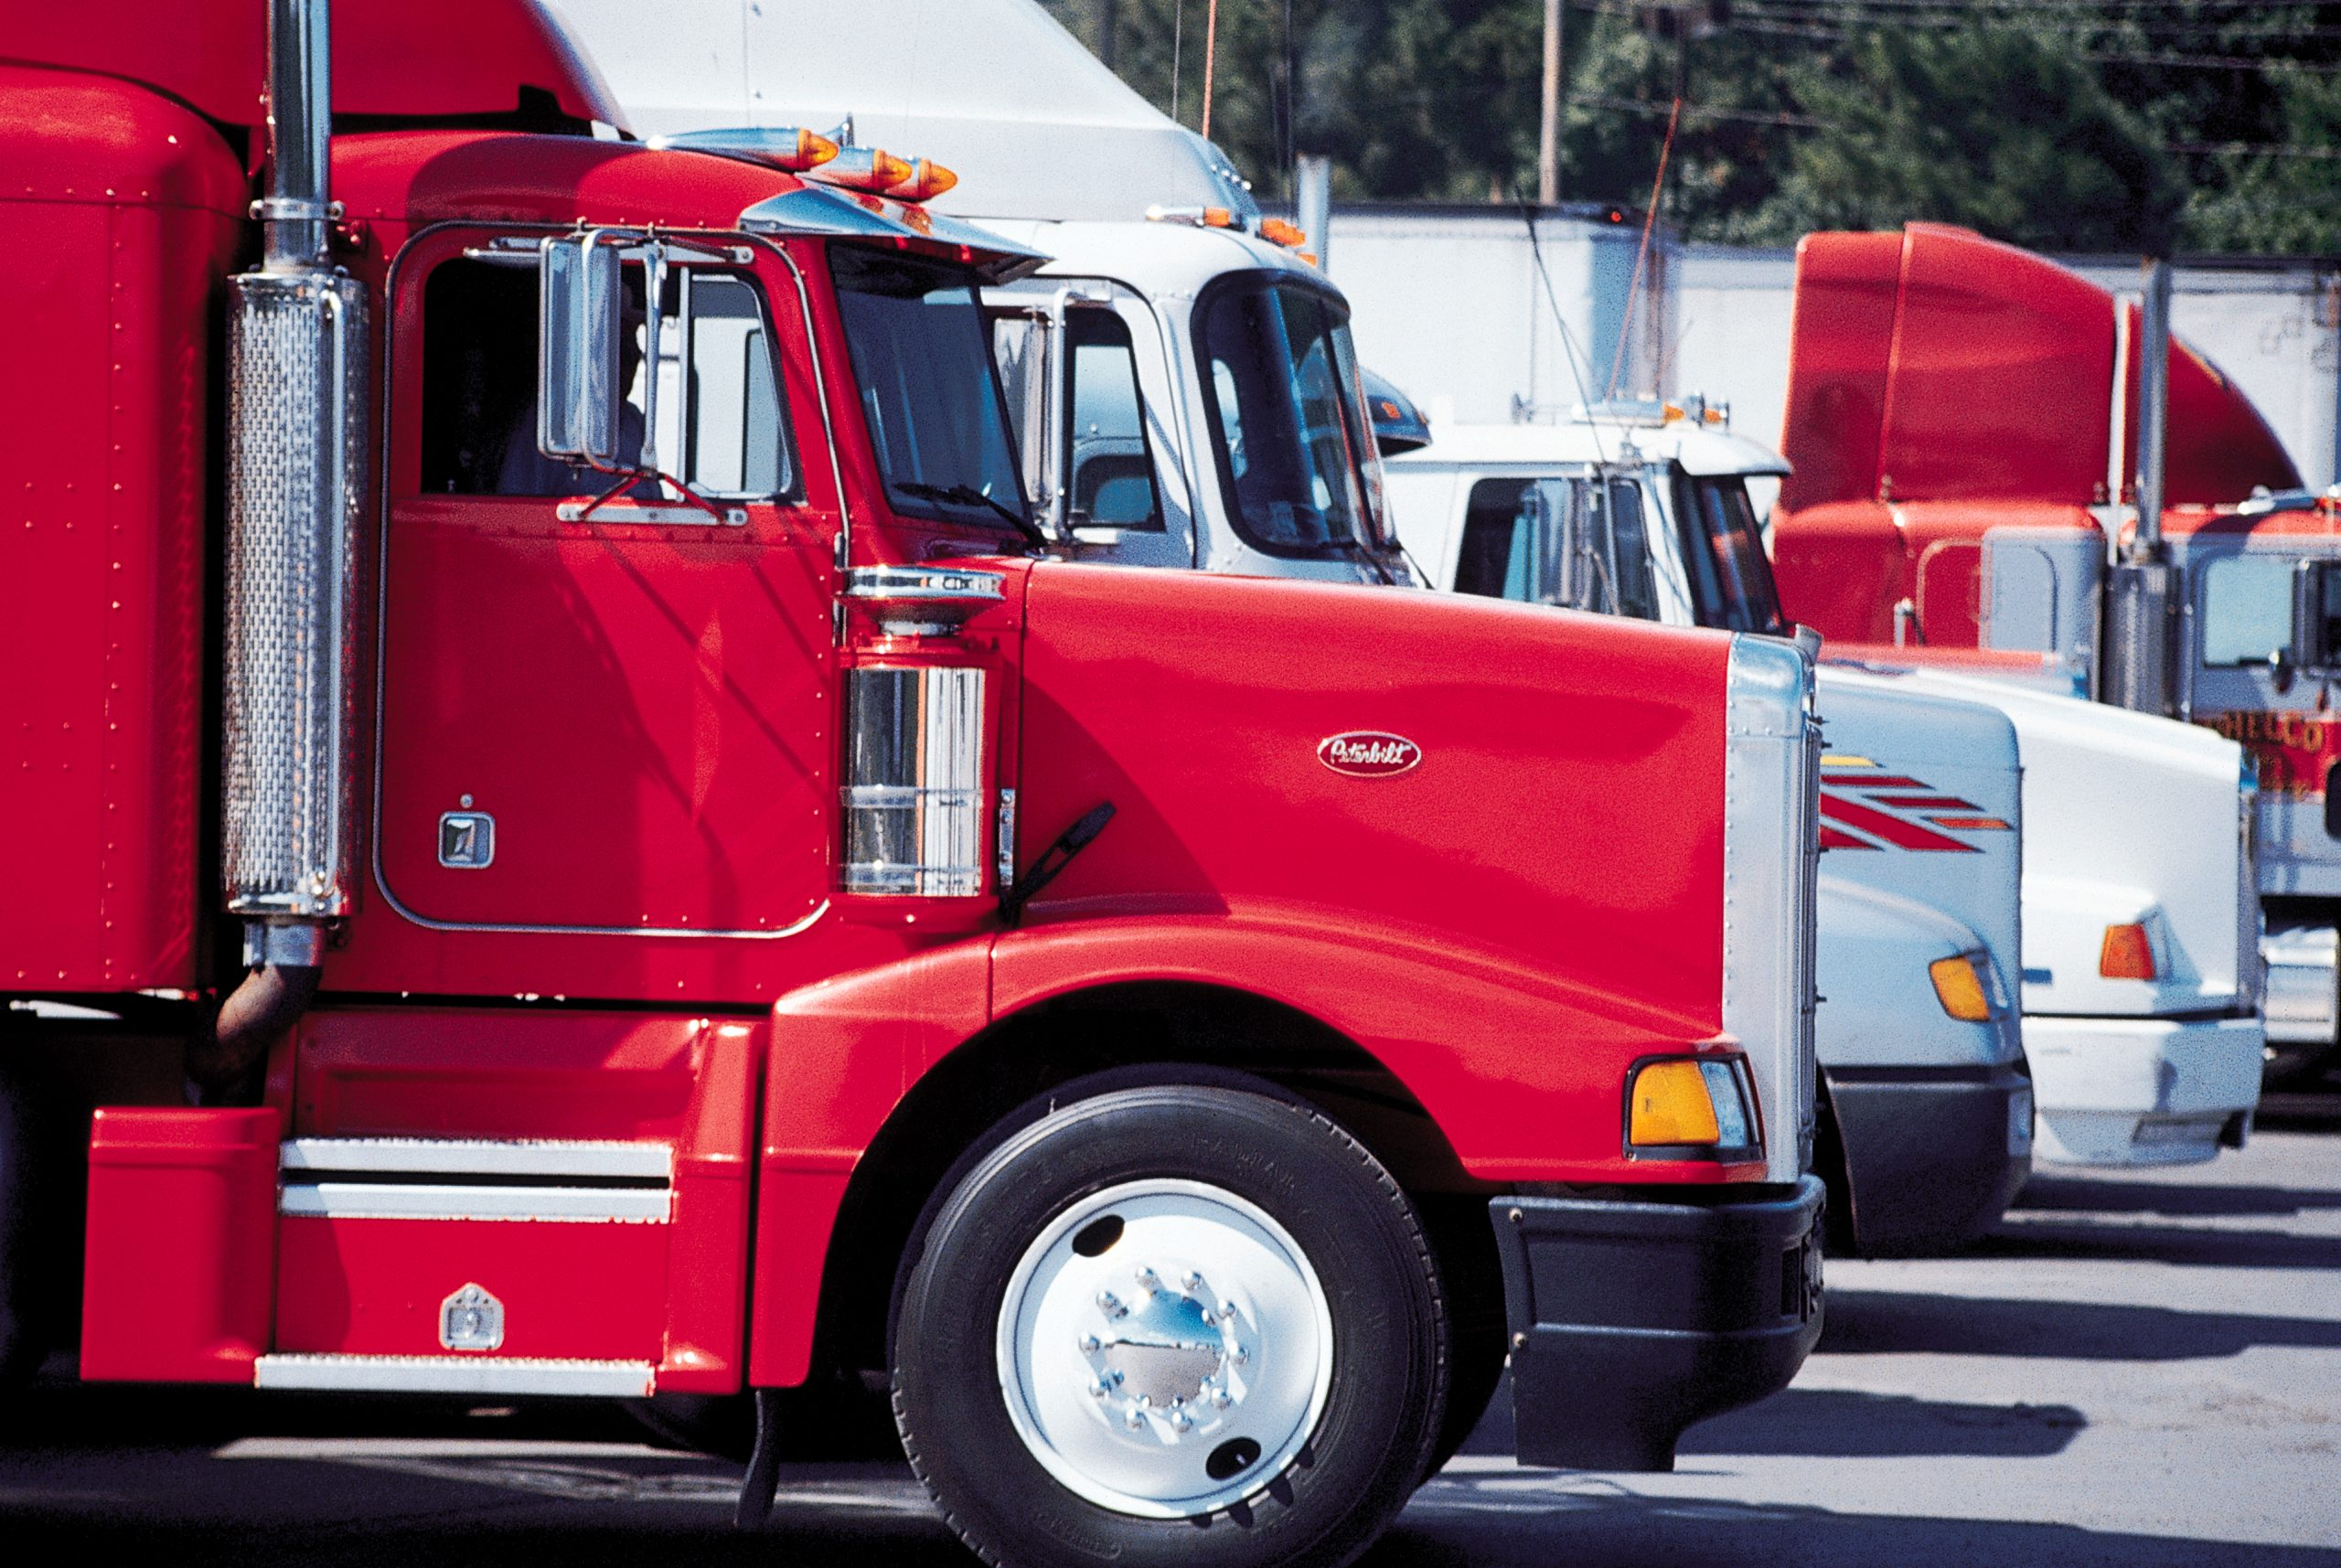 Picture of parked trucks. Shipping items to Dammam requires partners with quality vehicles